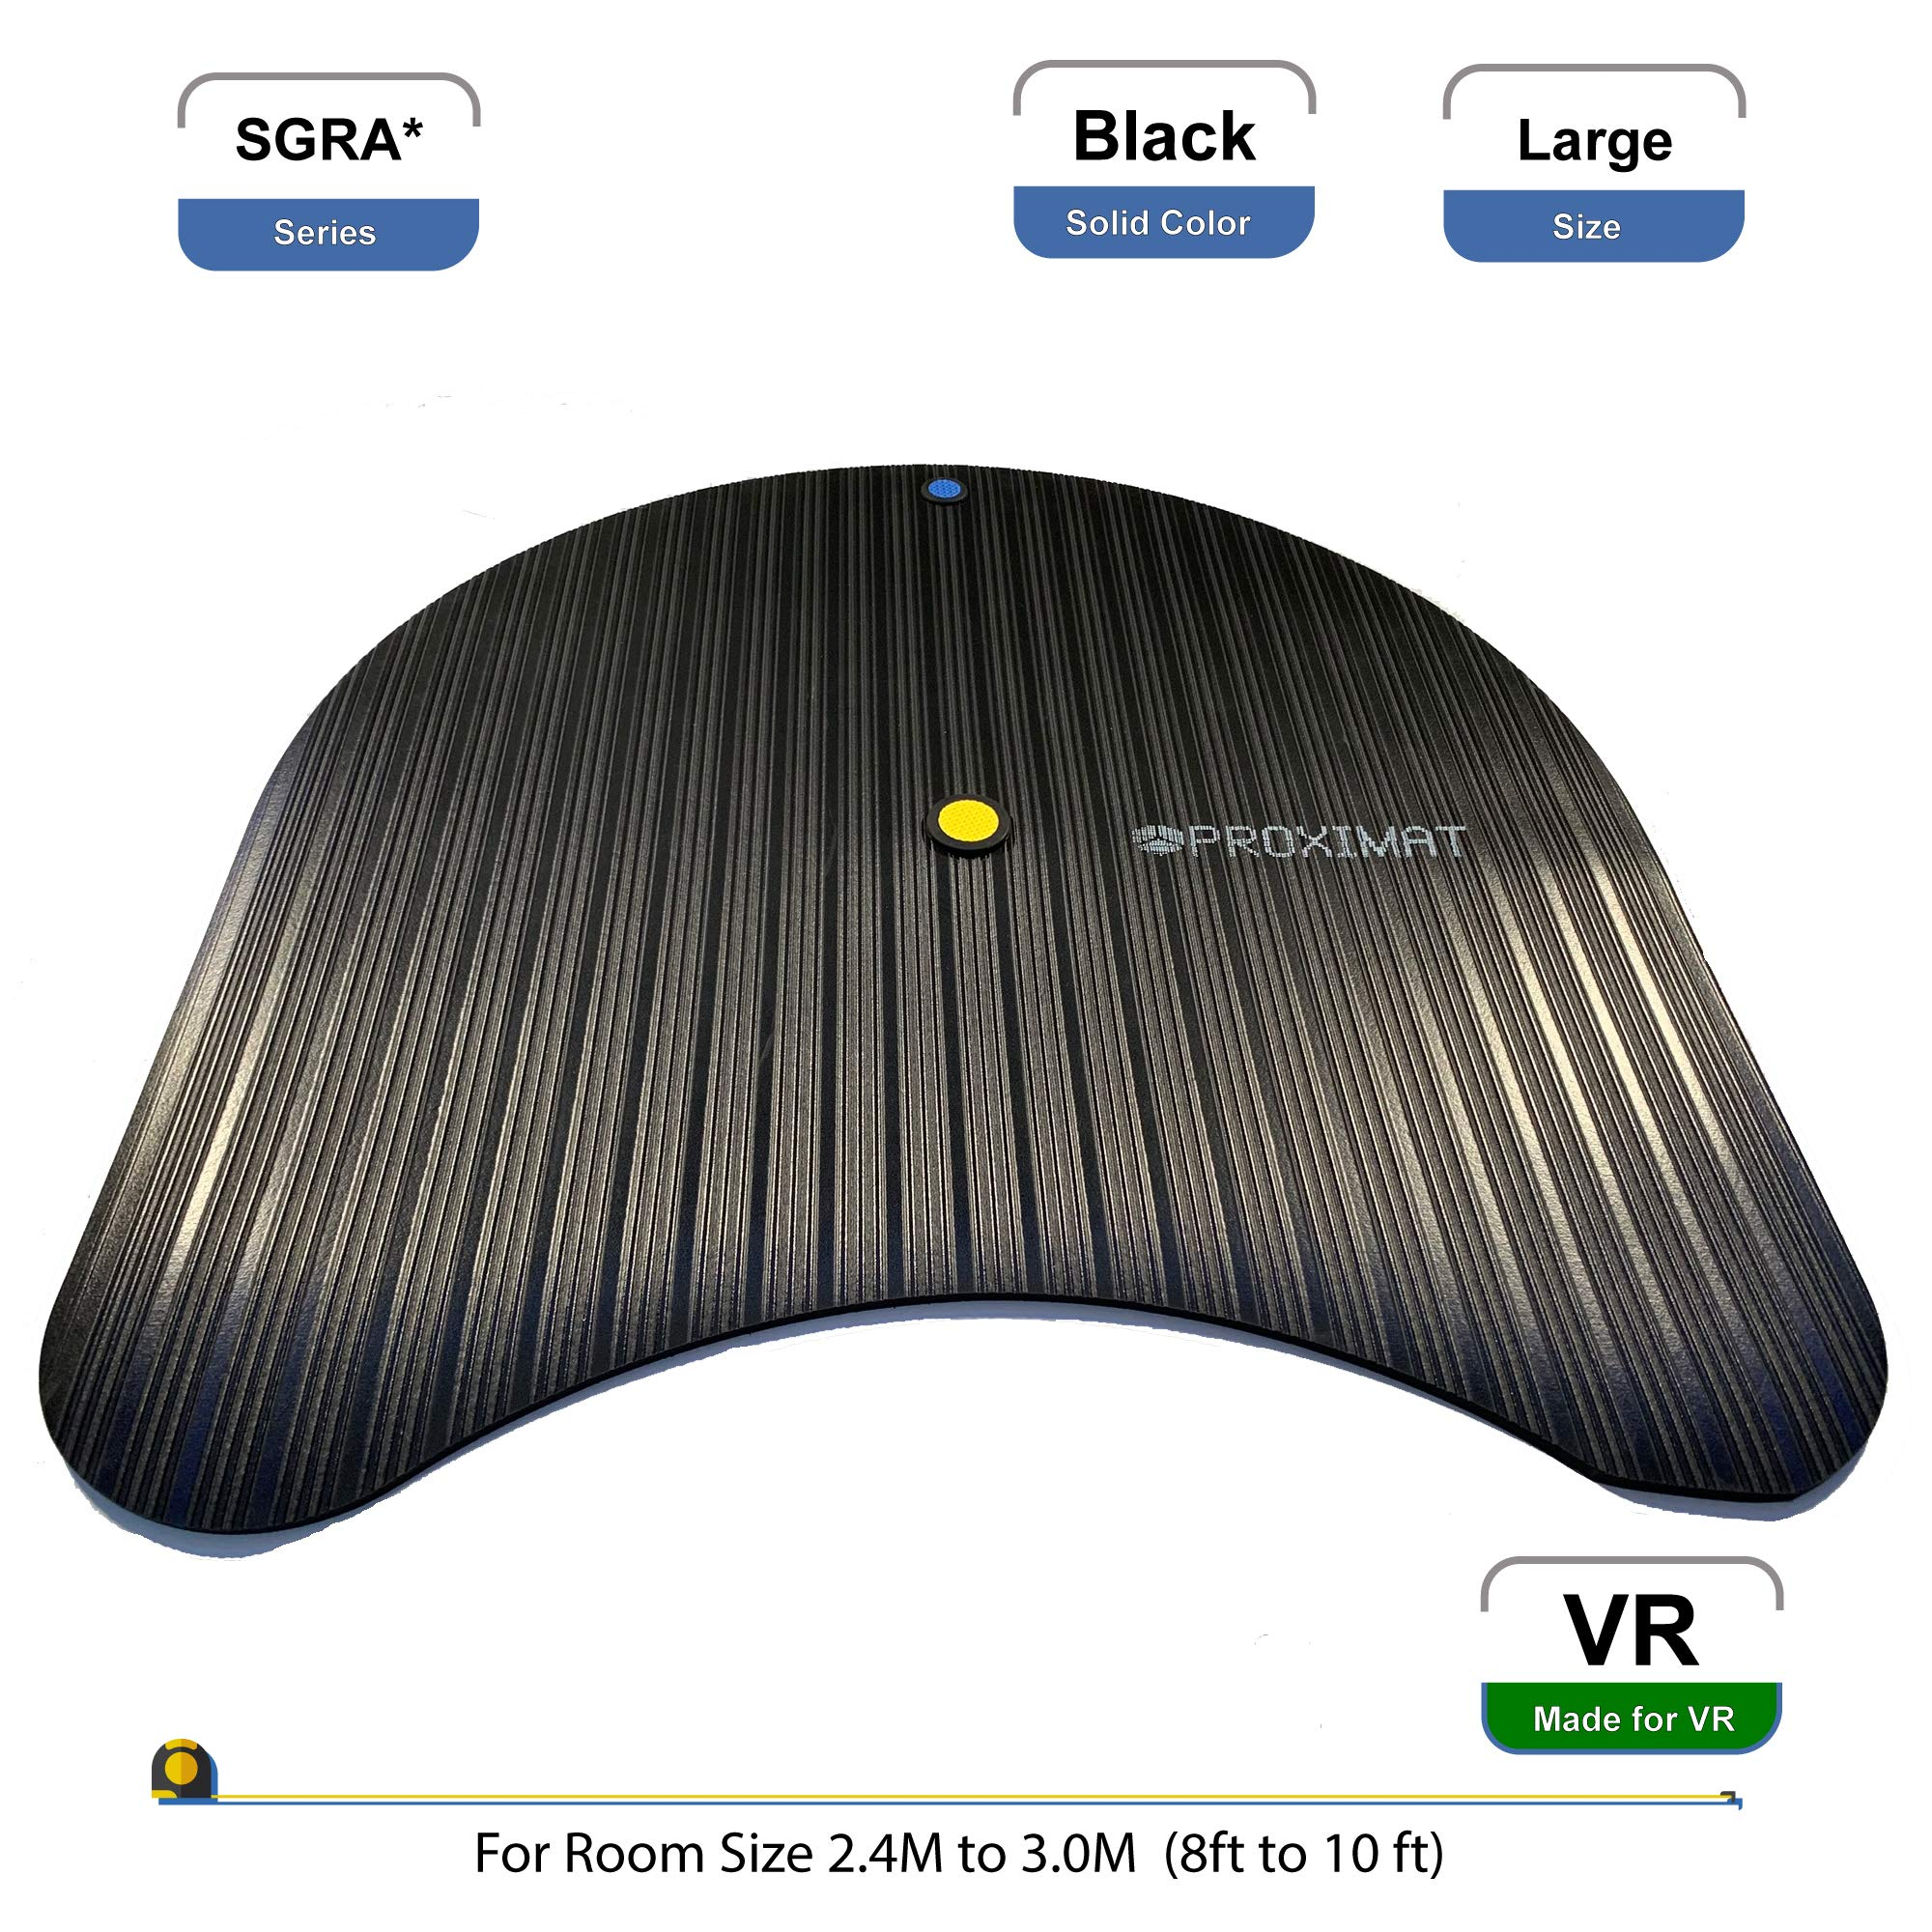 ProxiMat | SGRA* | Black | Large| Virtual Reality Chaperone Safety Mat Standing 8′ to 10′ Room Scale for HTC Vive…